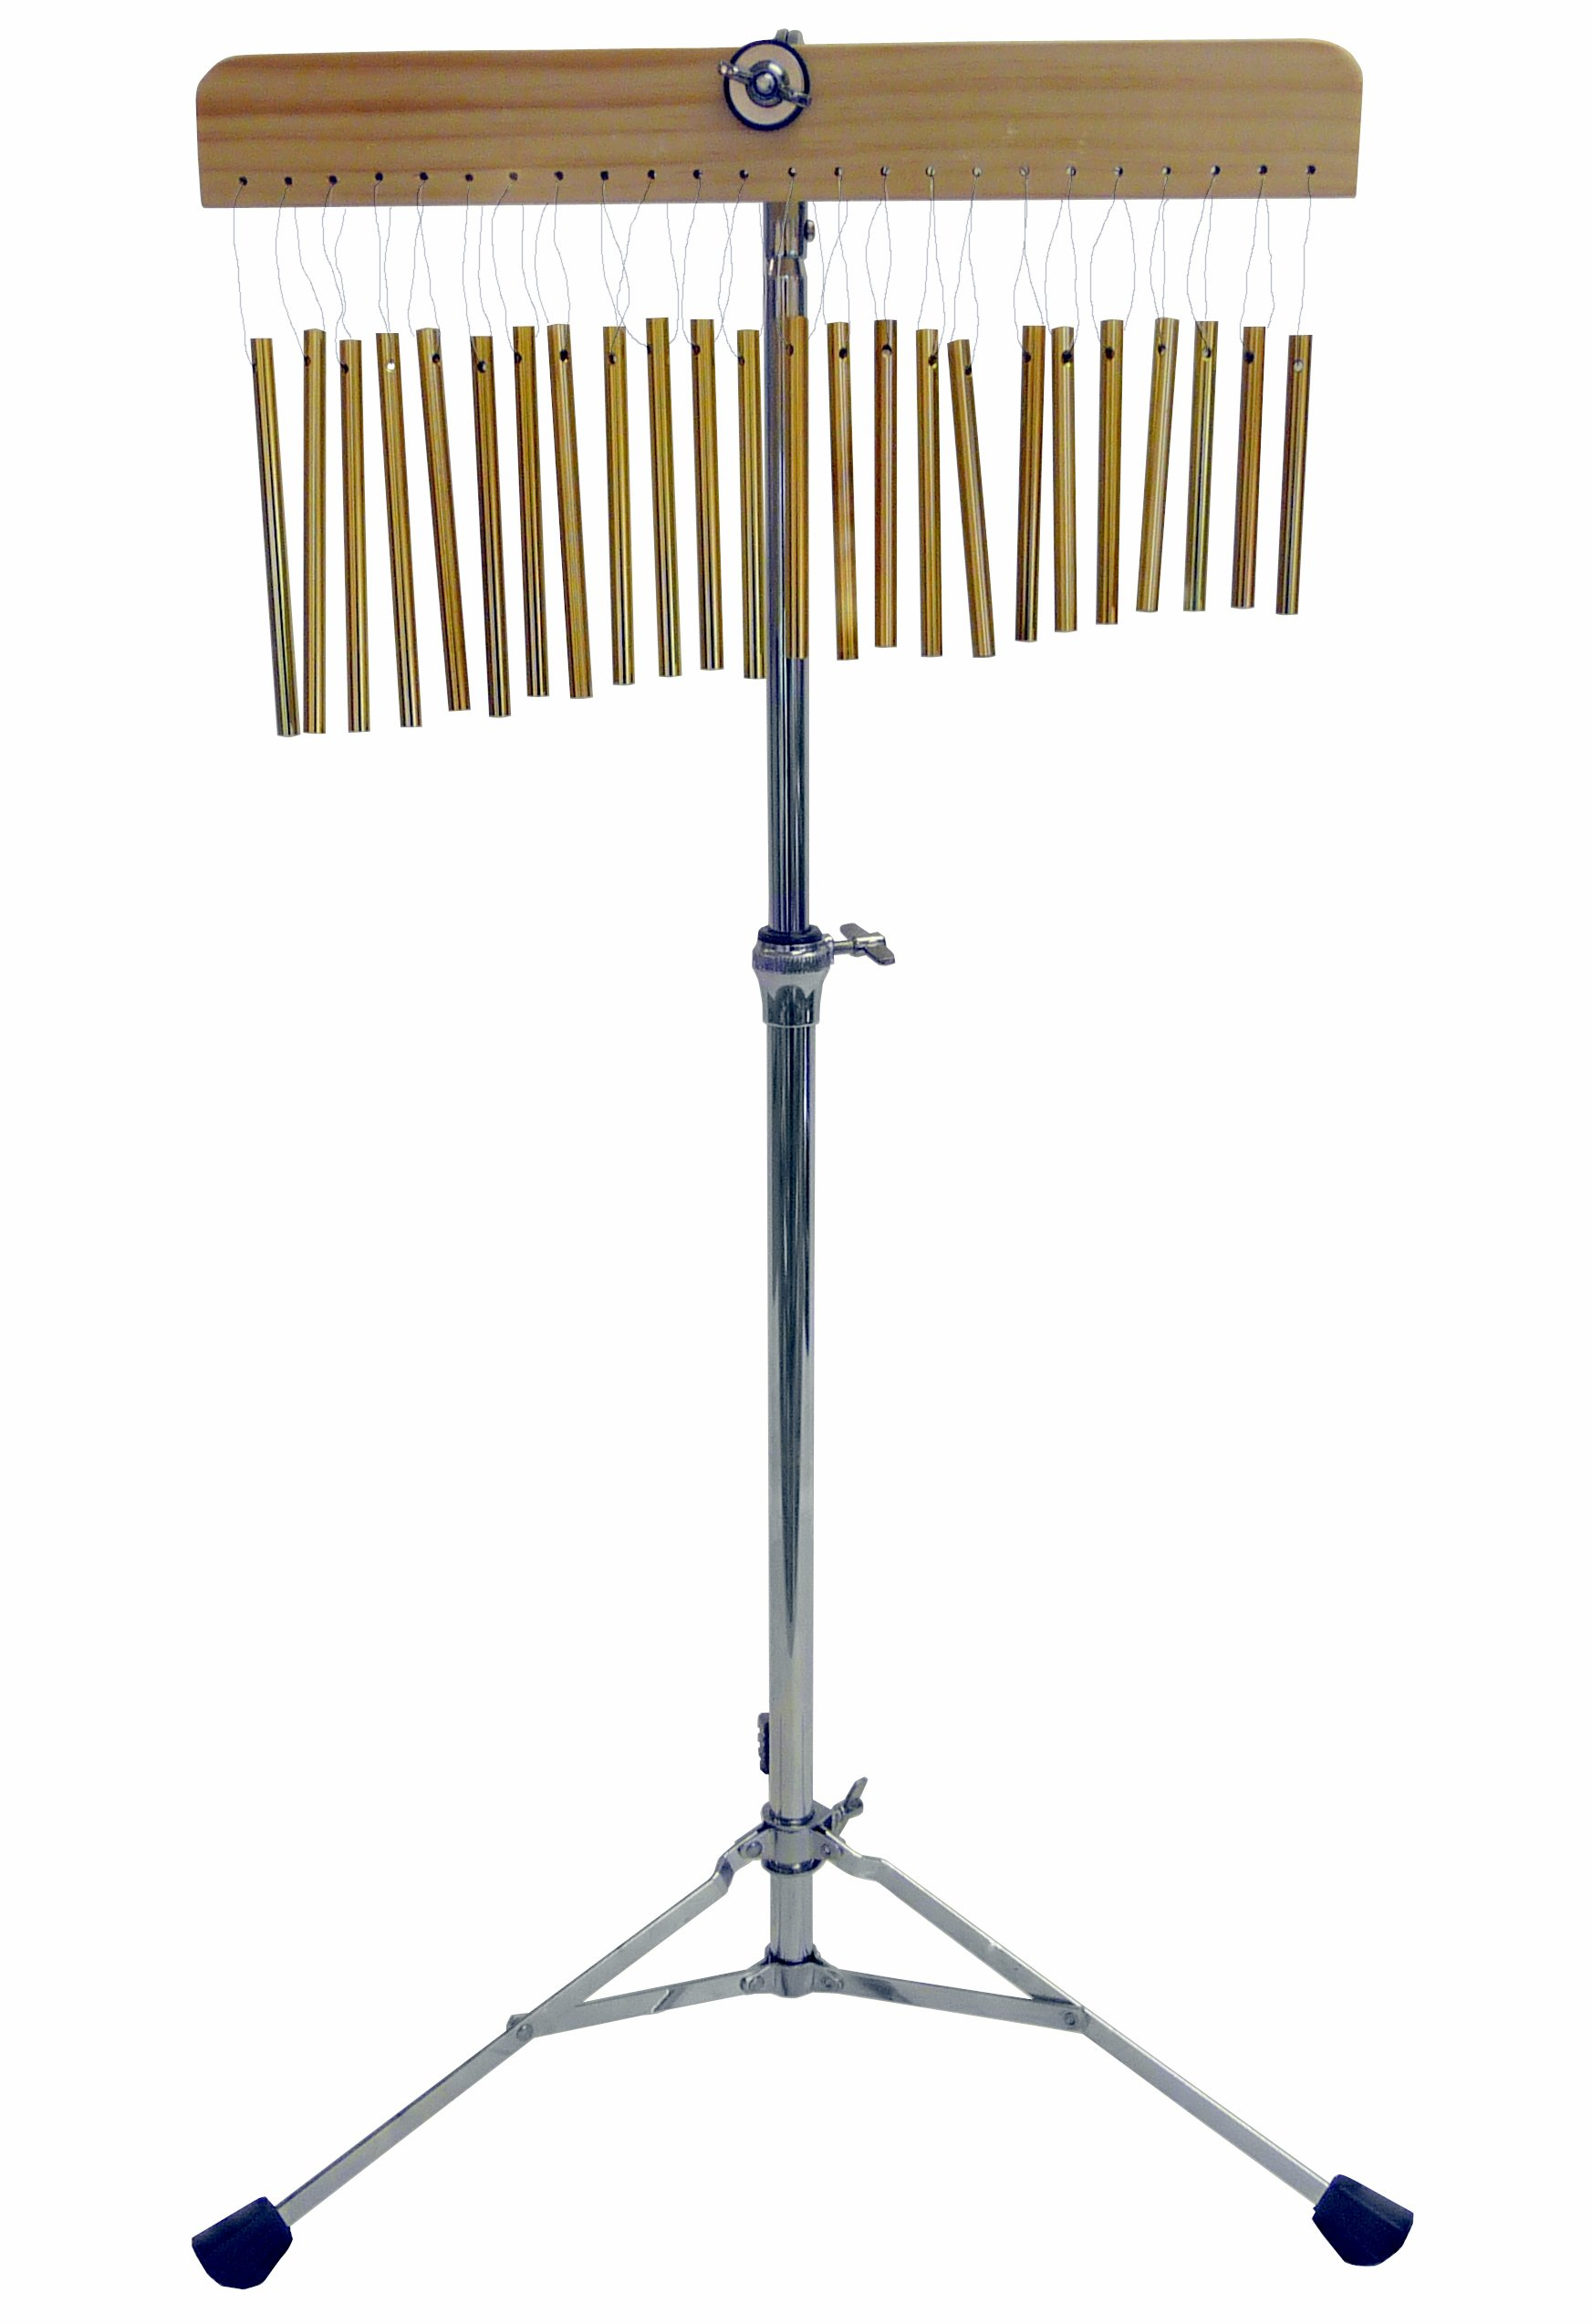 Suzuki Musical Instrument Corporation CT-24 Chime Tree with Stand and Striker